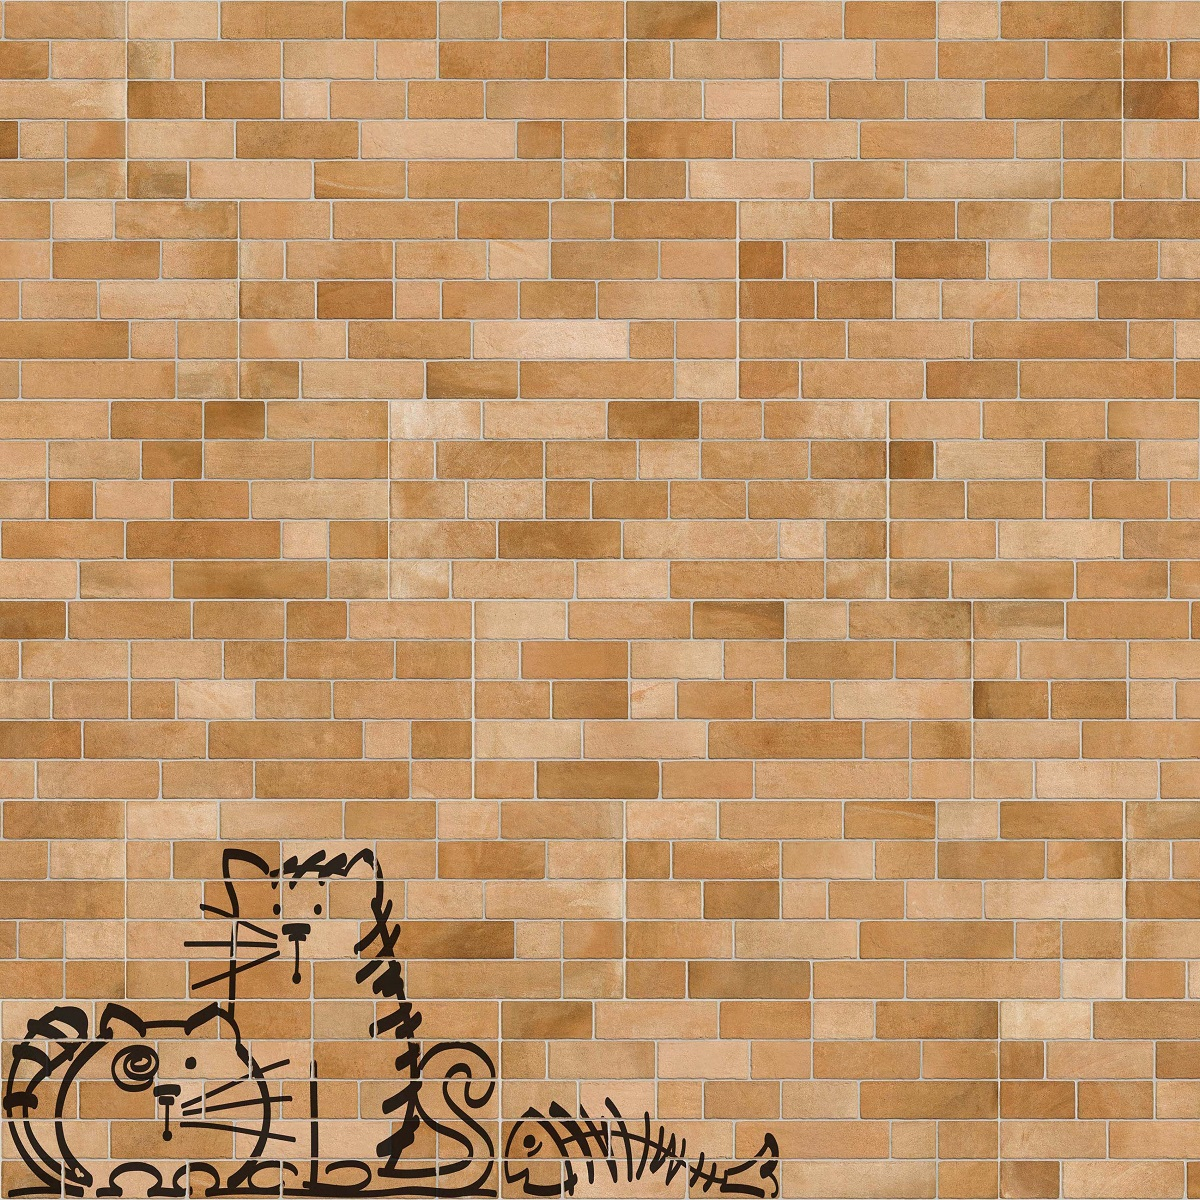 image/catalog/product_series_tiles/1058/natural_1_smaller_pixel.jpg